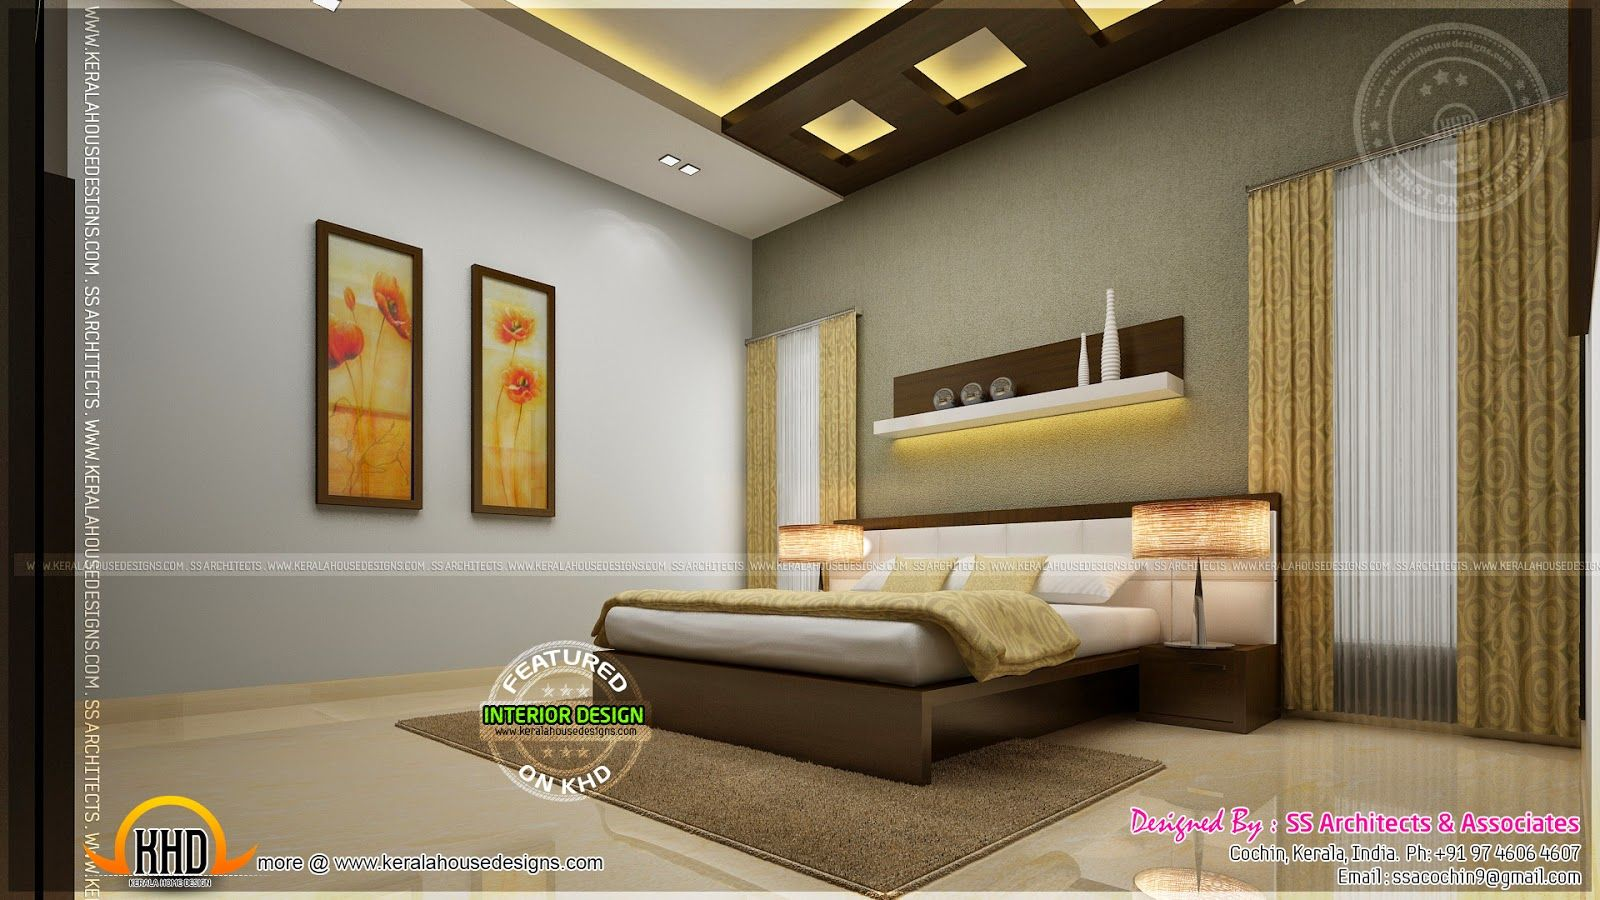 Indian master bedroom interior design google search for Latest bedroom decorating ideas